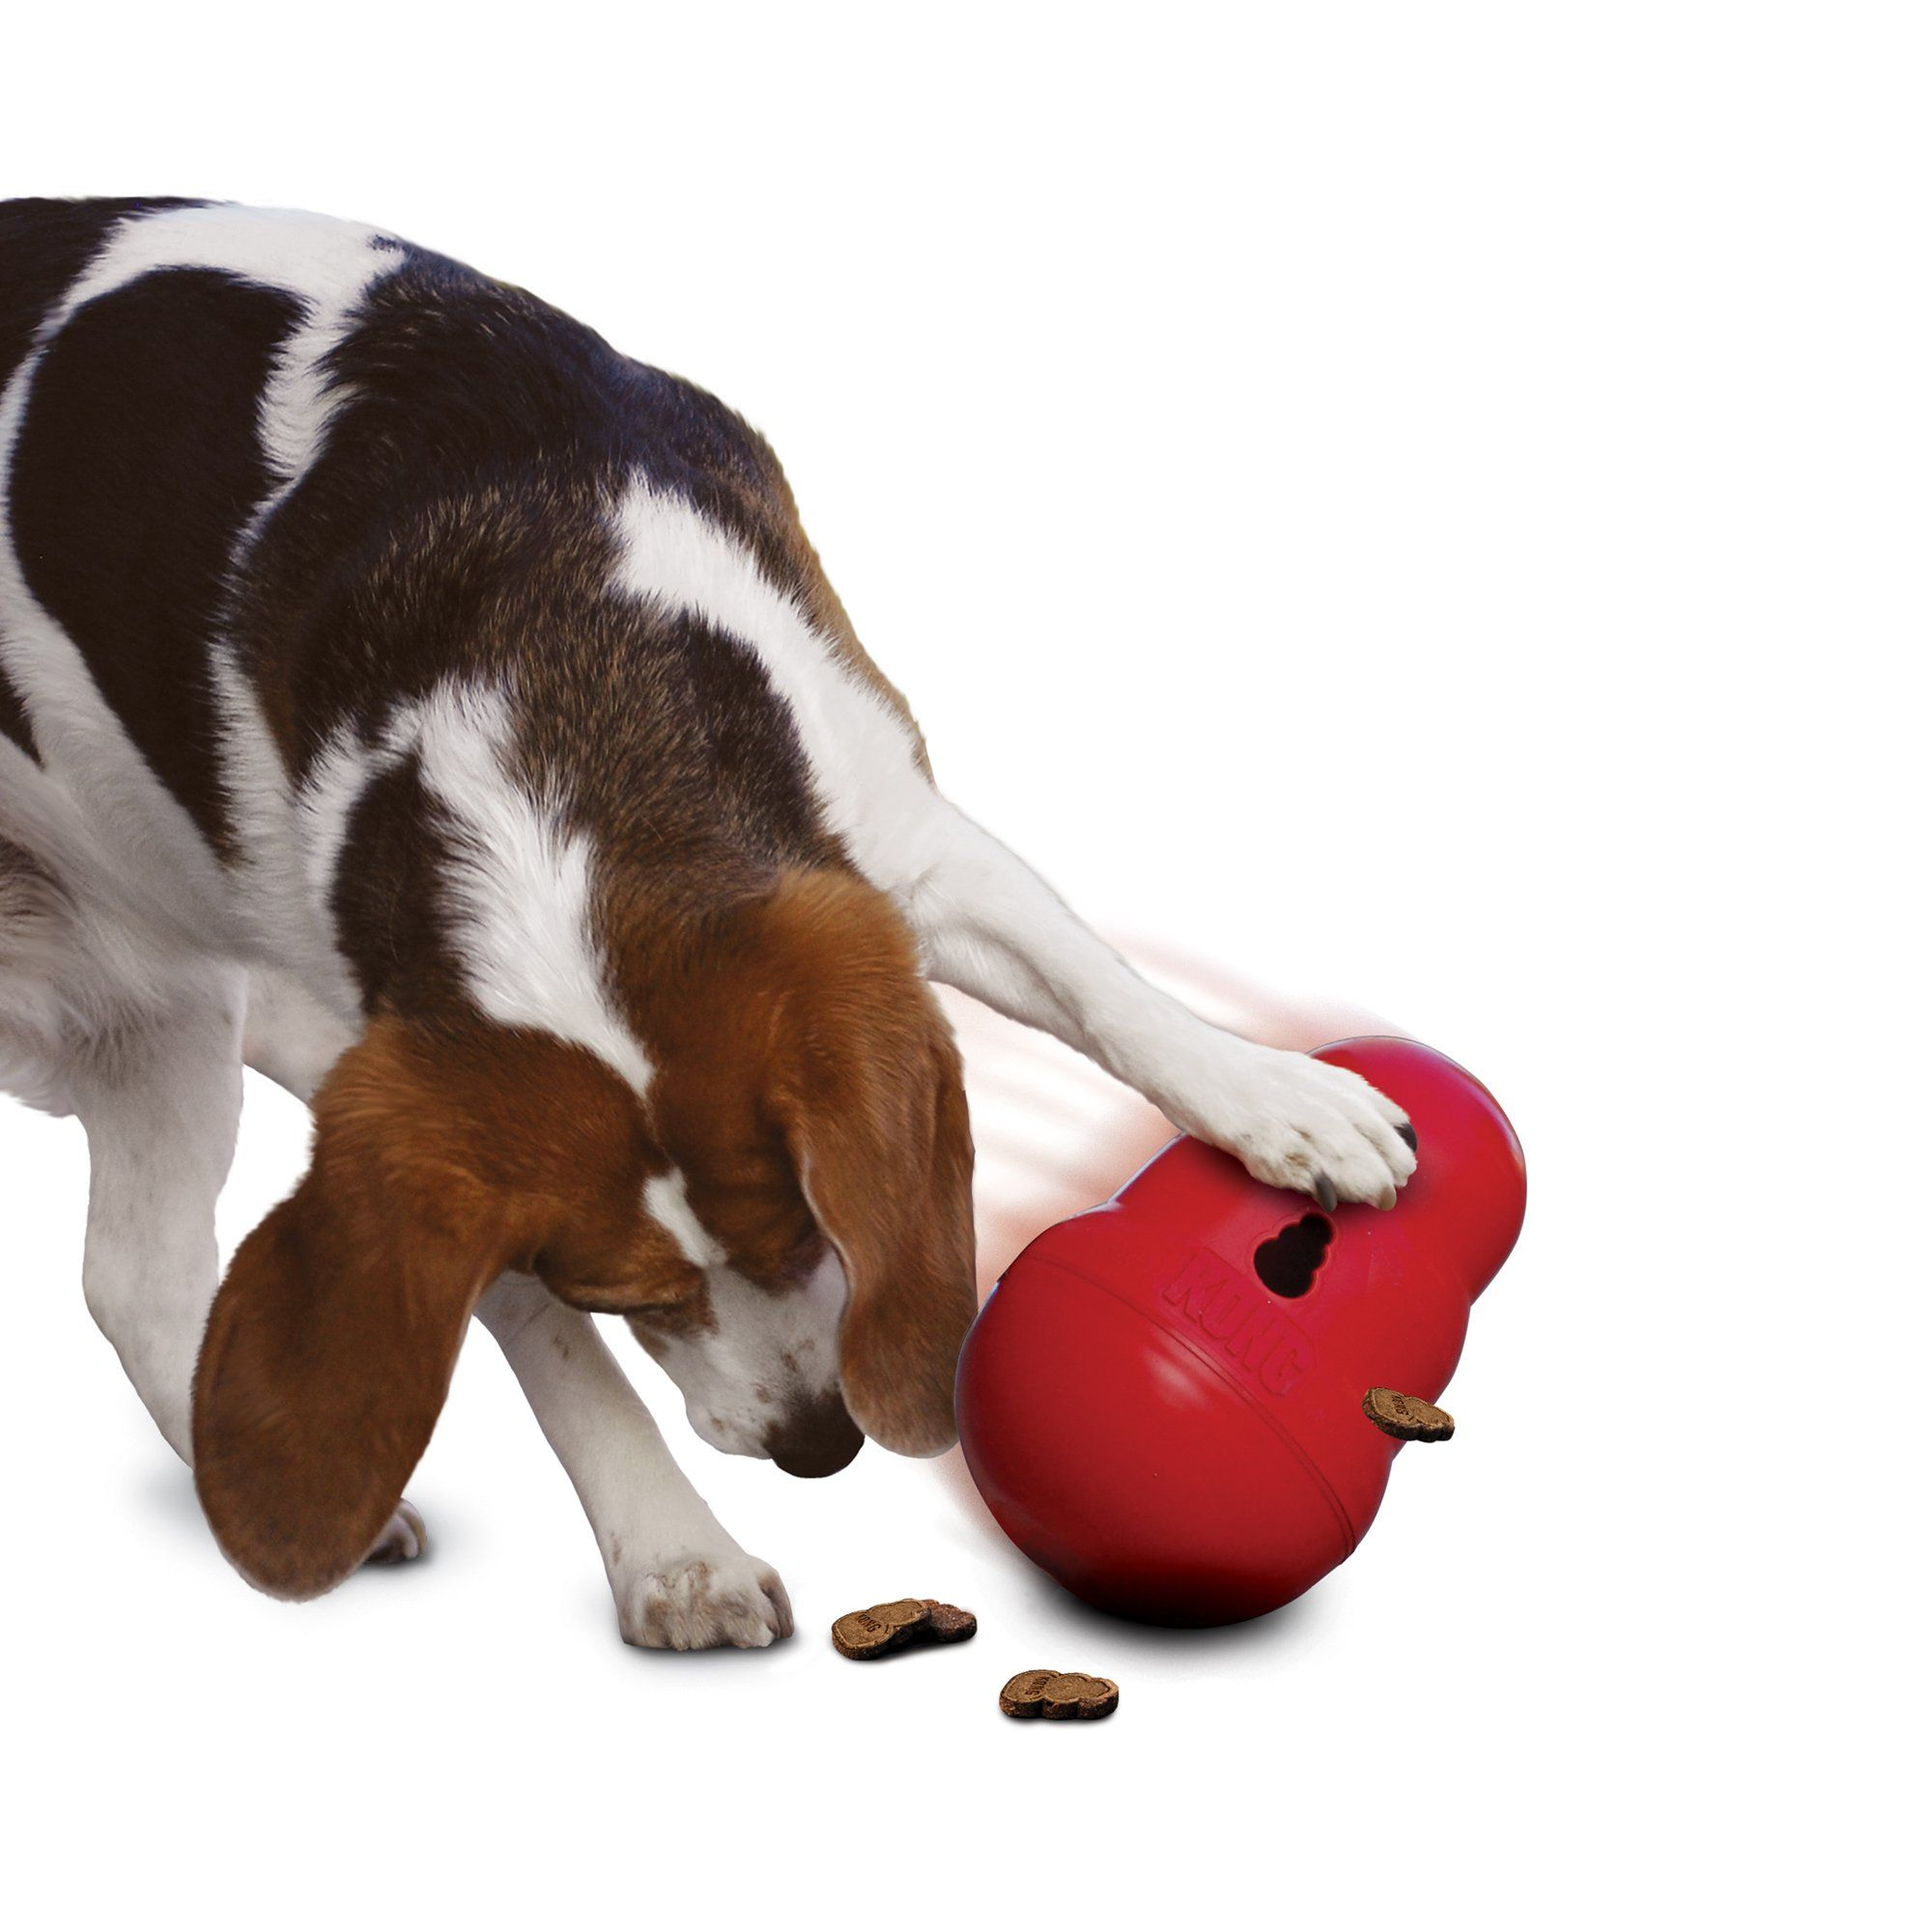 Kong Wobbler Food Dispensing Dog Toy Small Red Interactive Dog